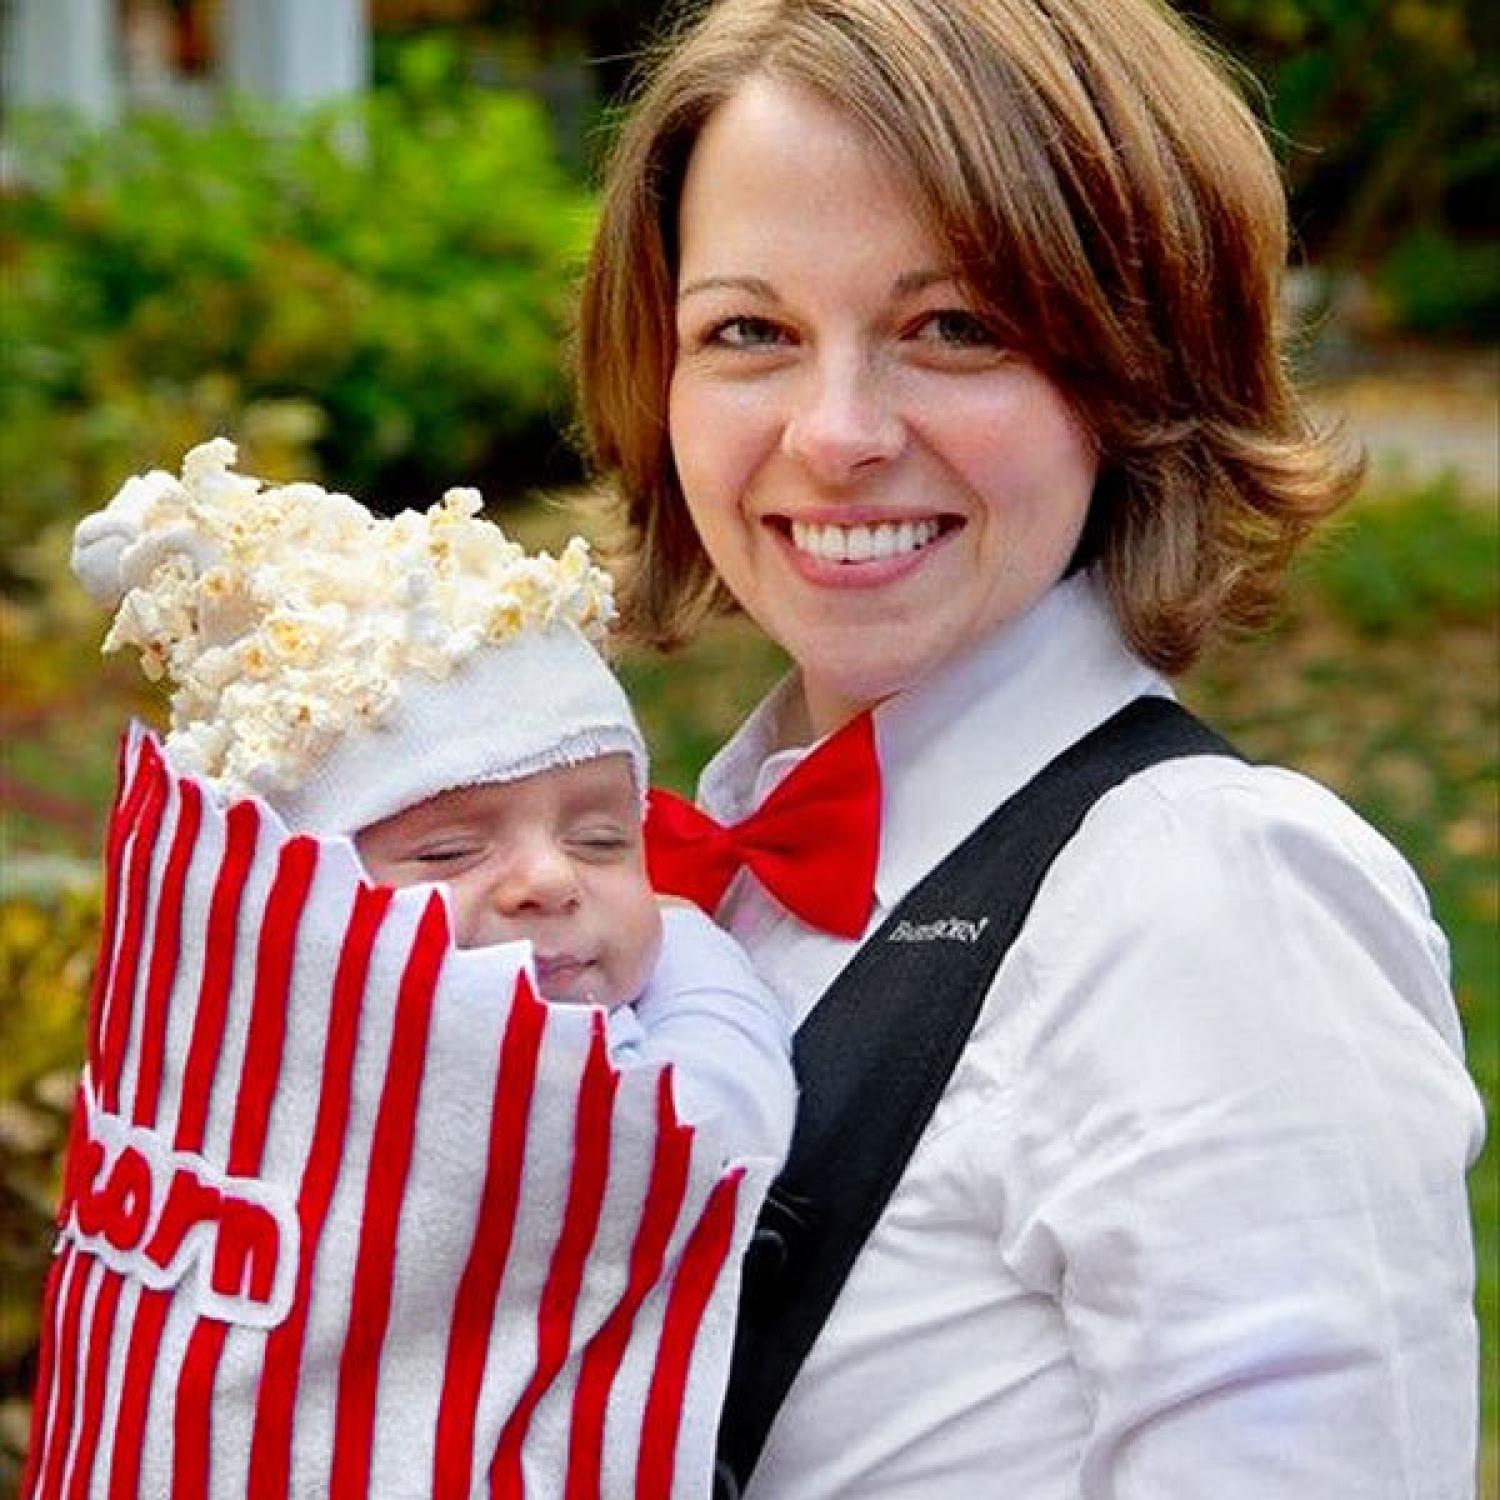 sc 1 st  Parenting & Oh Baby! Hilarious Homemade Halloween Costumes for Babies | Parenting